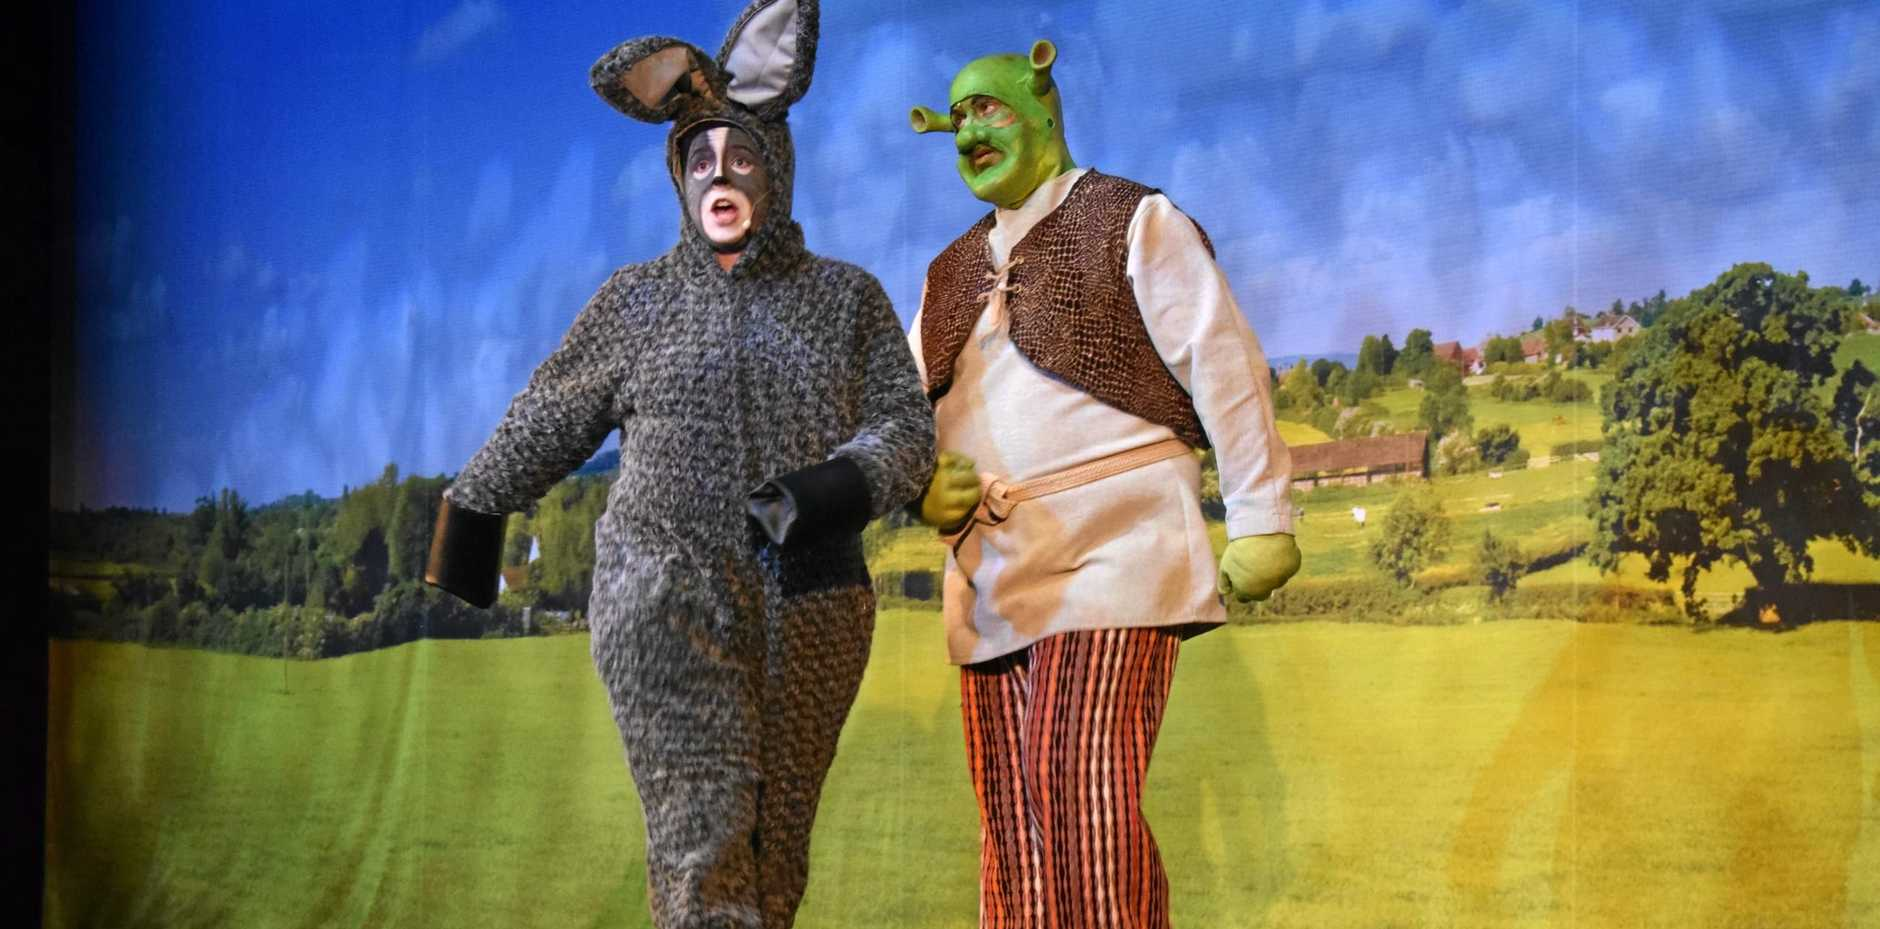 Shrek The Musical opens at The Pilbeam Theatre on Friday night featuring Rockhampton Musical Union Youth Choir and Dean Netherwood as Shrek.